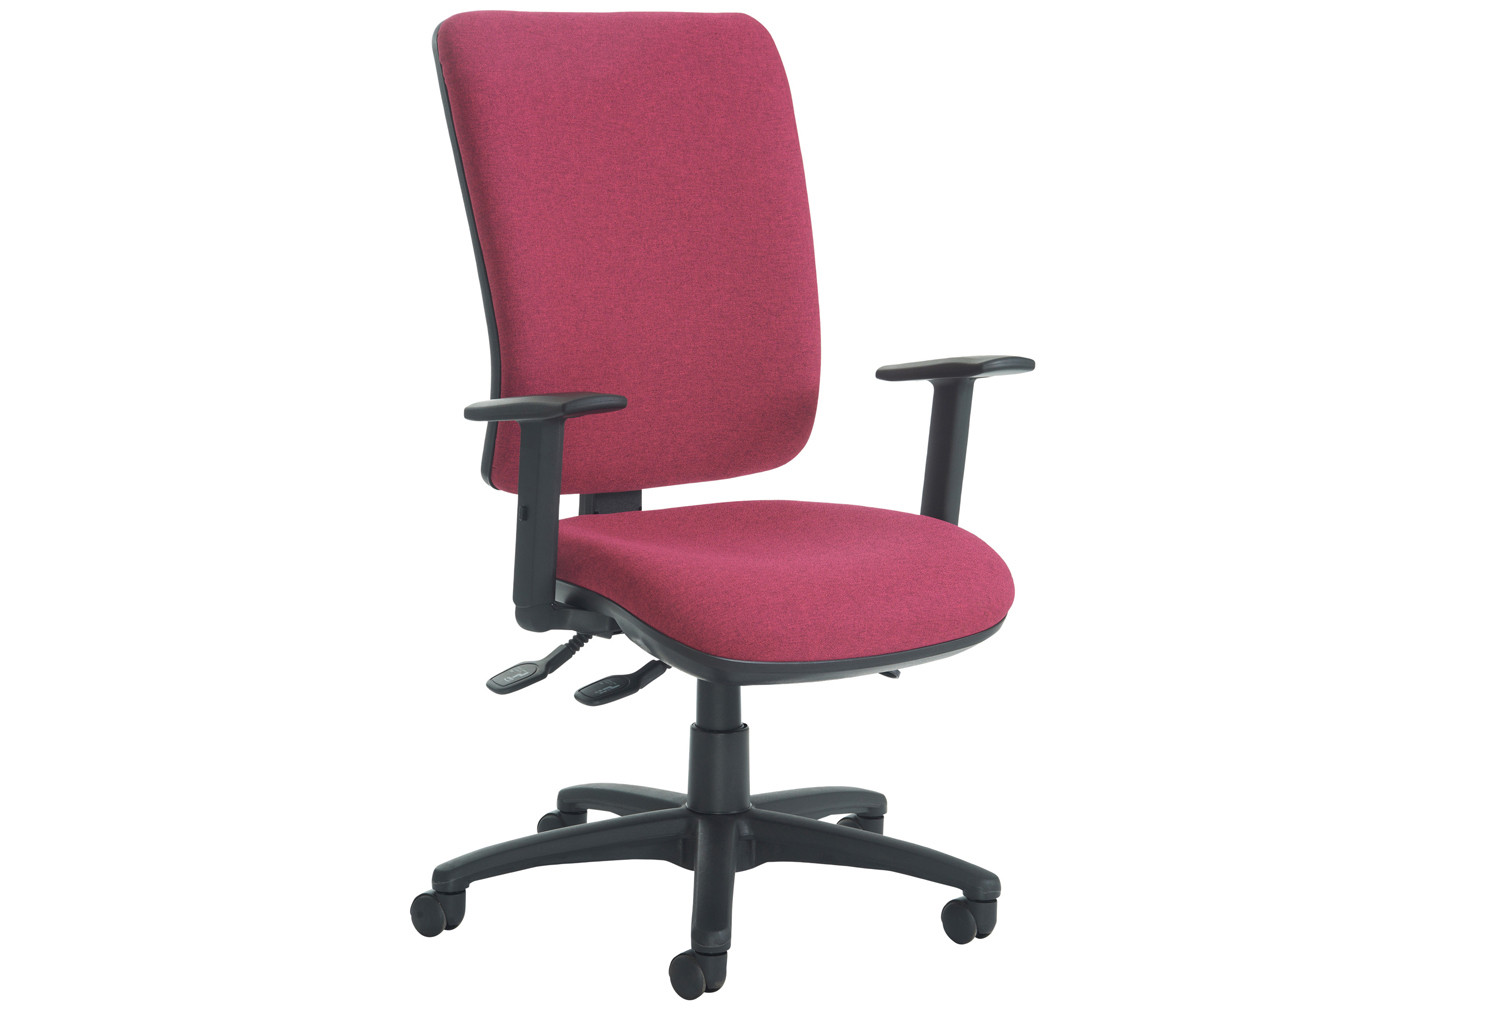 polnoon extra high back operator chair with height adjustable arms furniture at work. Black Bedroom Furniture Sets. Home Design Ideas